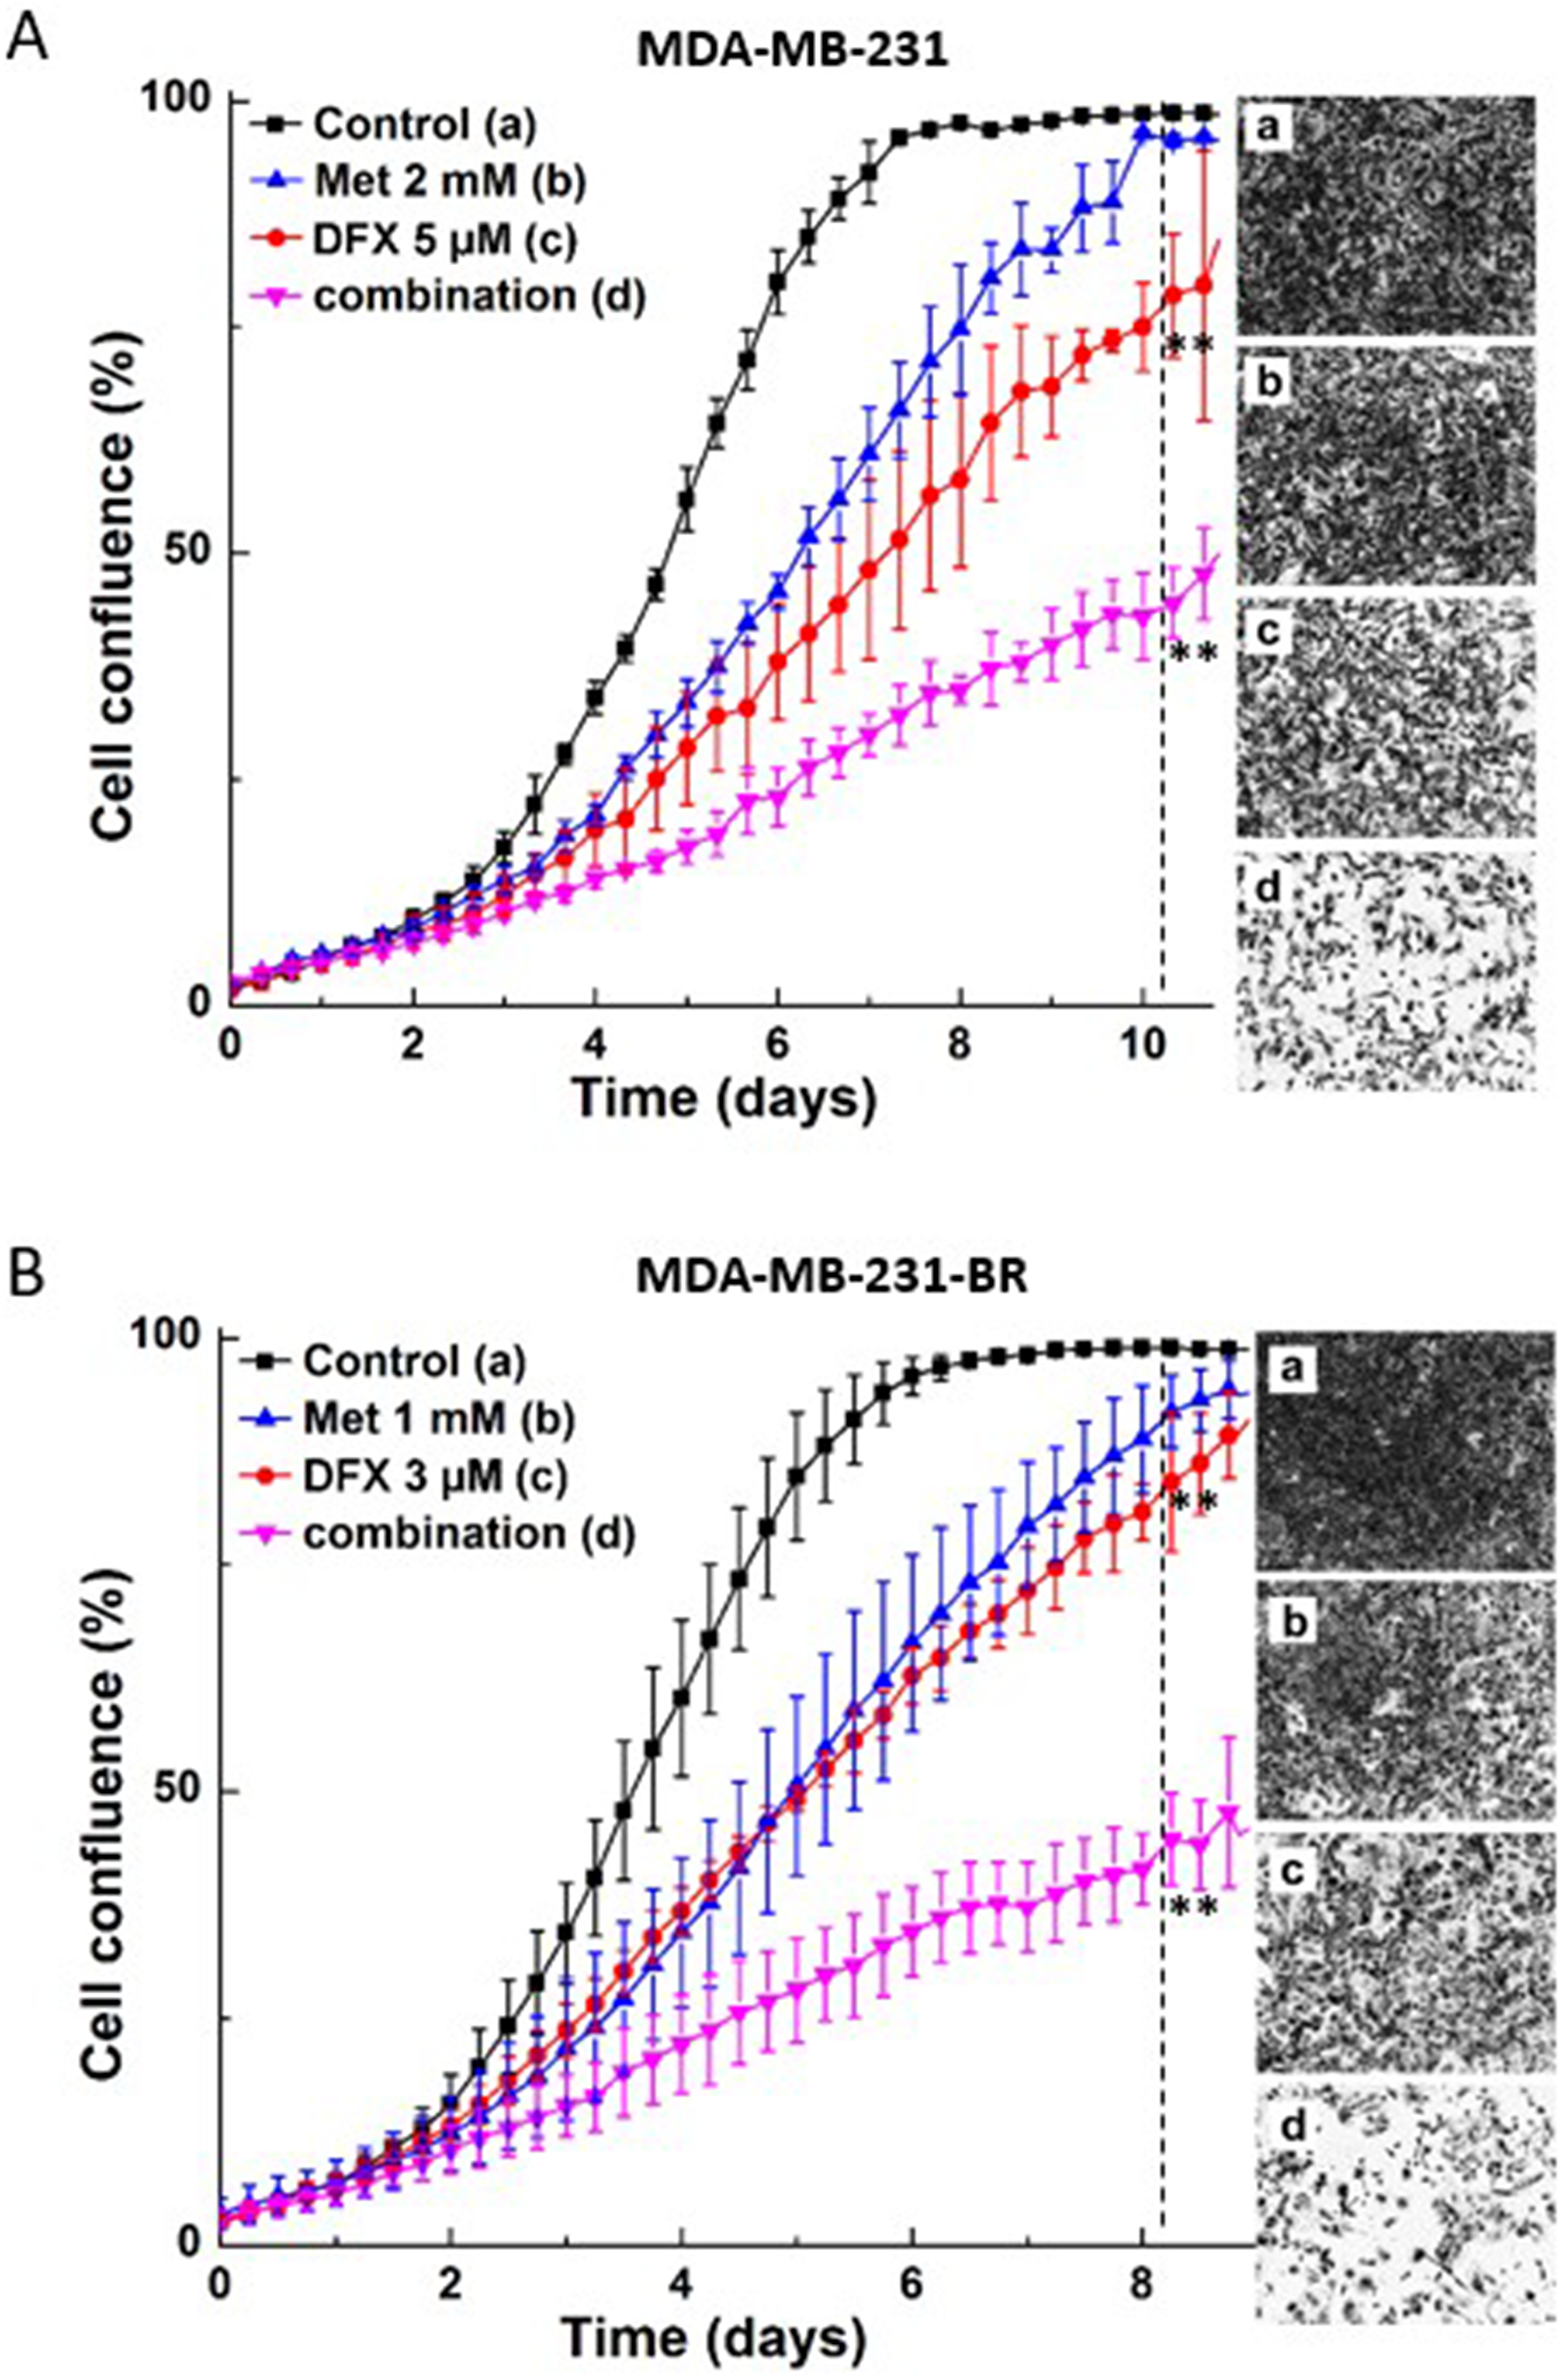 Effect of Met and iron chelator, DFX, on MDA-MB-231 and MDA-MB-231-BR cell proliferation.